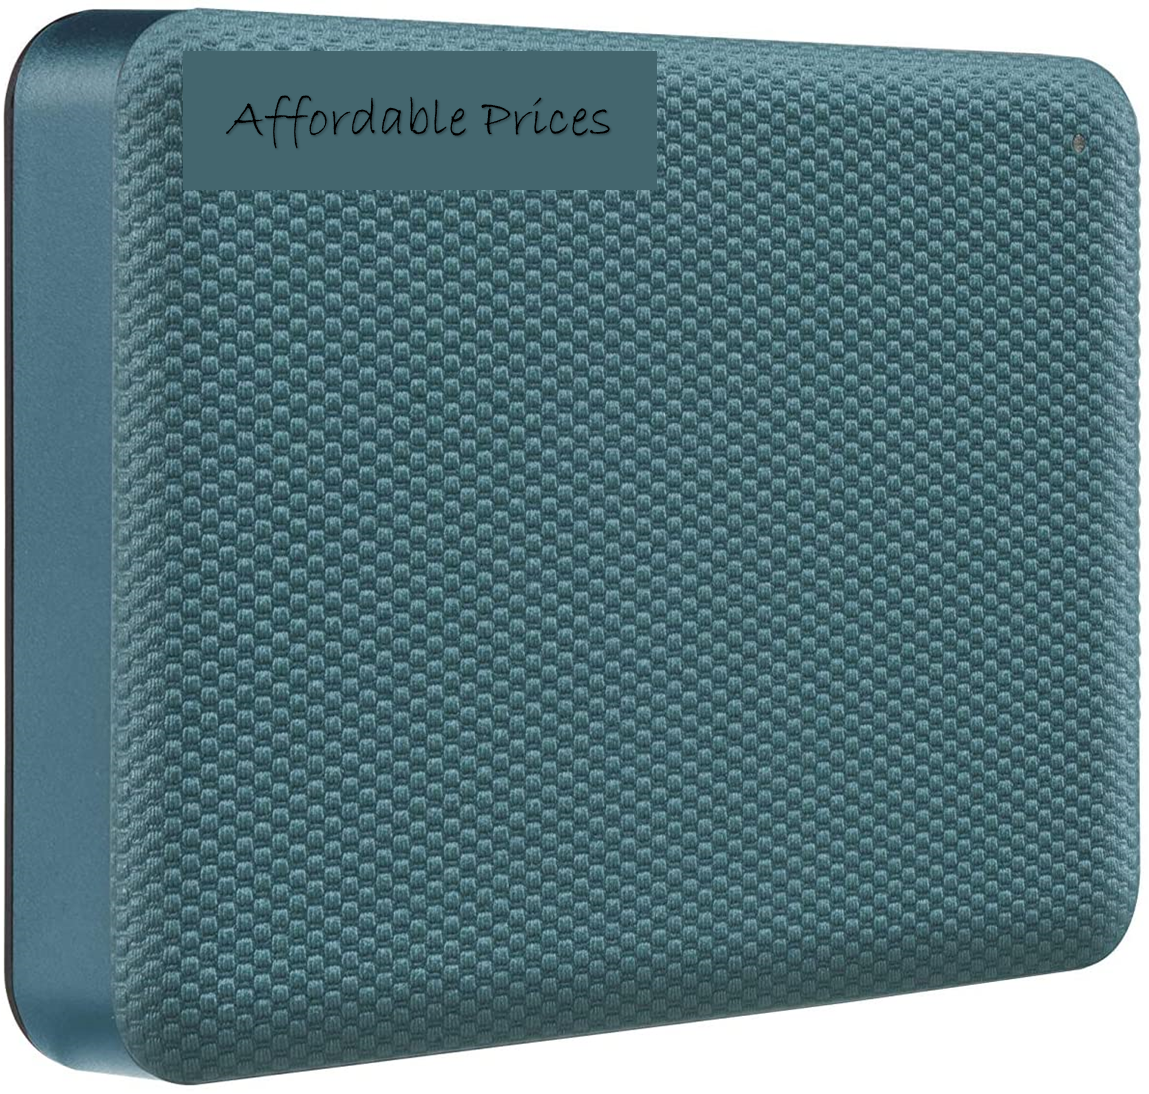 Portable External Hard Drive 4 TB USB 3.0